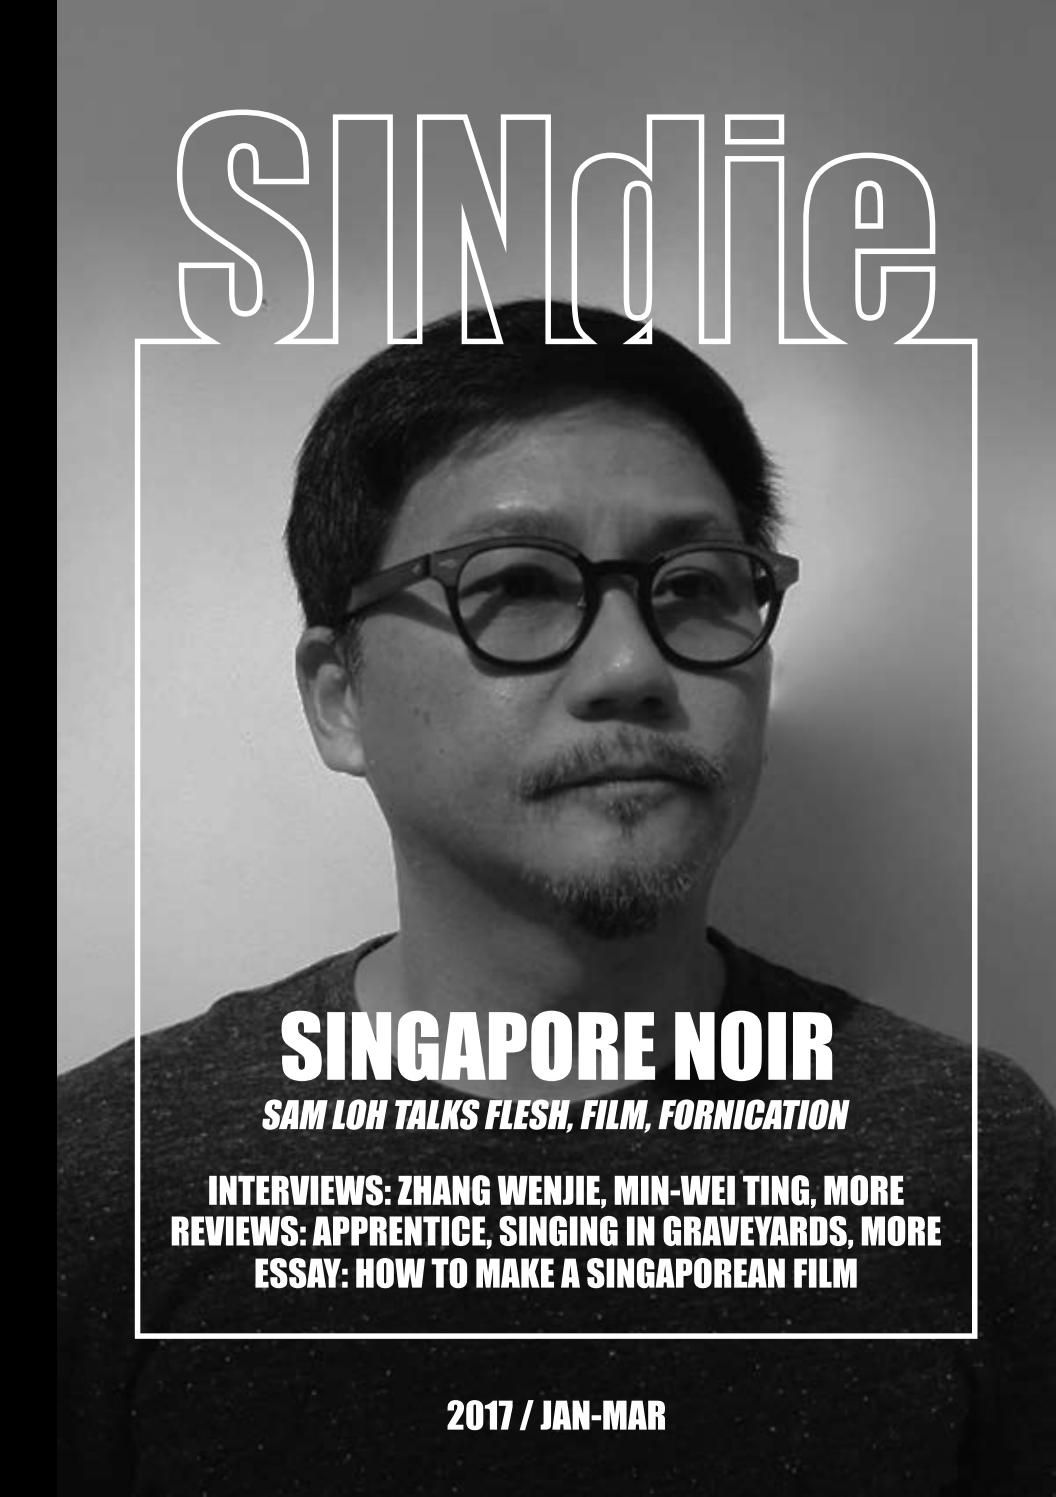 Featuring interviews with SGIFF Programme Director, Zhang Wenjie, independent filmmaker, Sam Loh, and more.